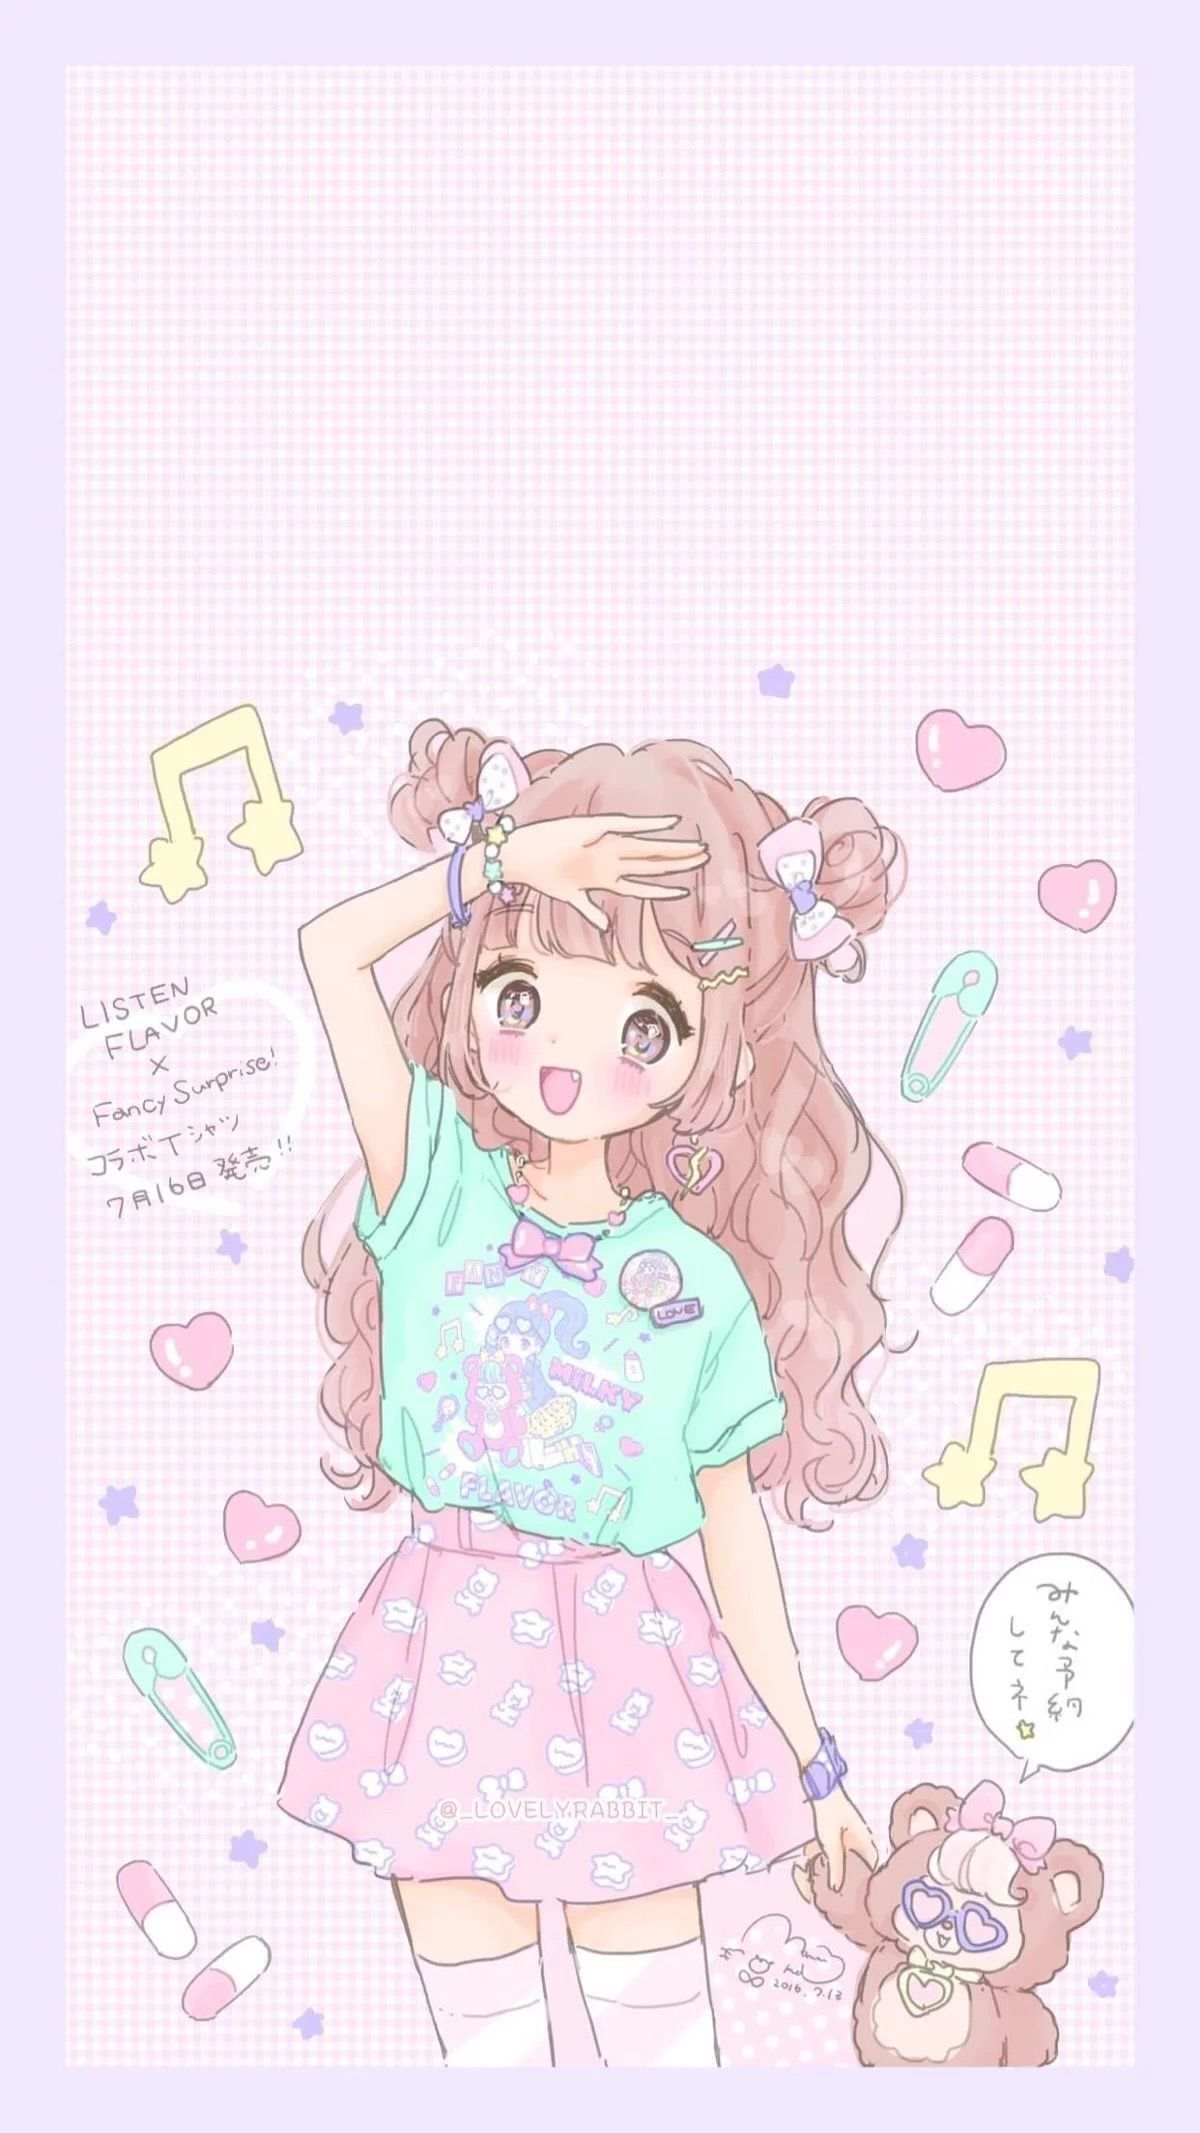 Pastel Anime Cute Phone Wallpapers Cute Anime Wallpaper Kawaii Wallpaper Kawaii Anime